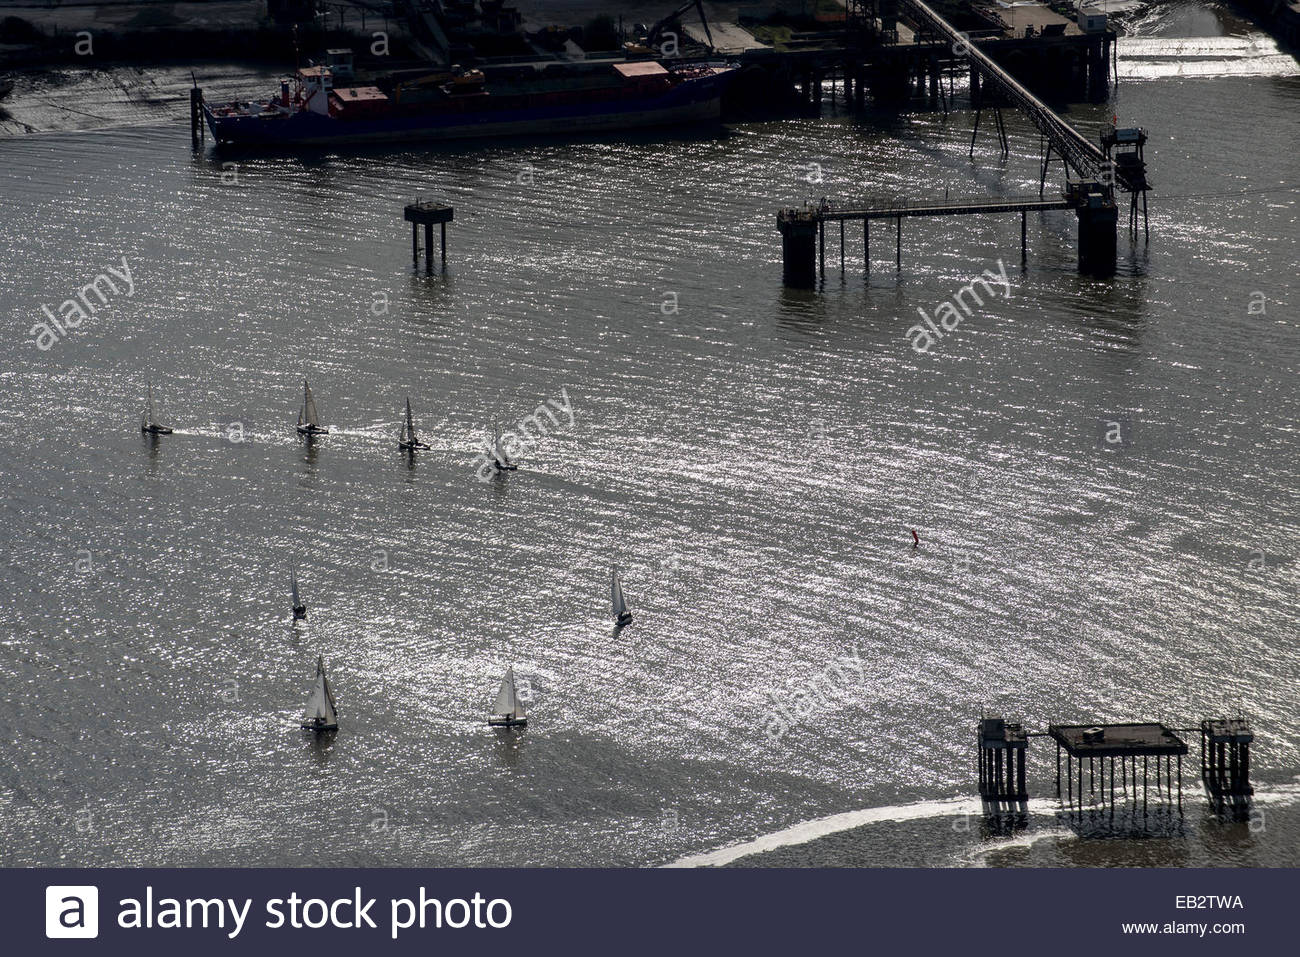 An aerial view of sailing dinghies competing in a race on the Thames river near Docklands - Stock Image